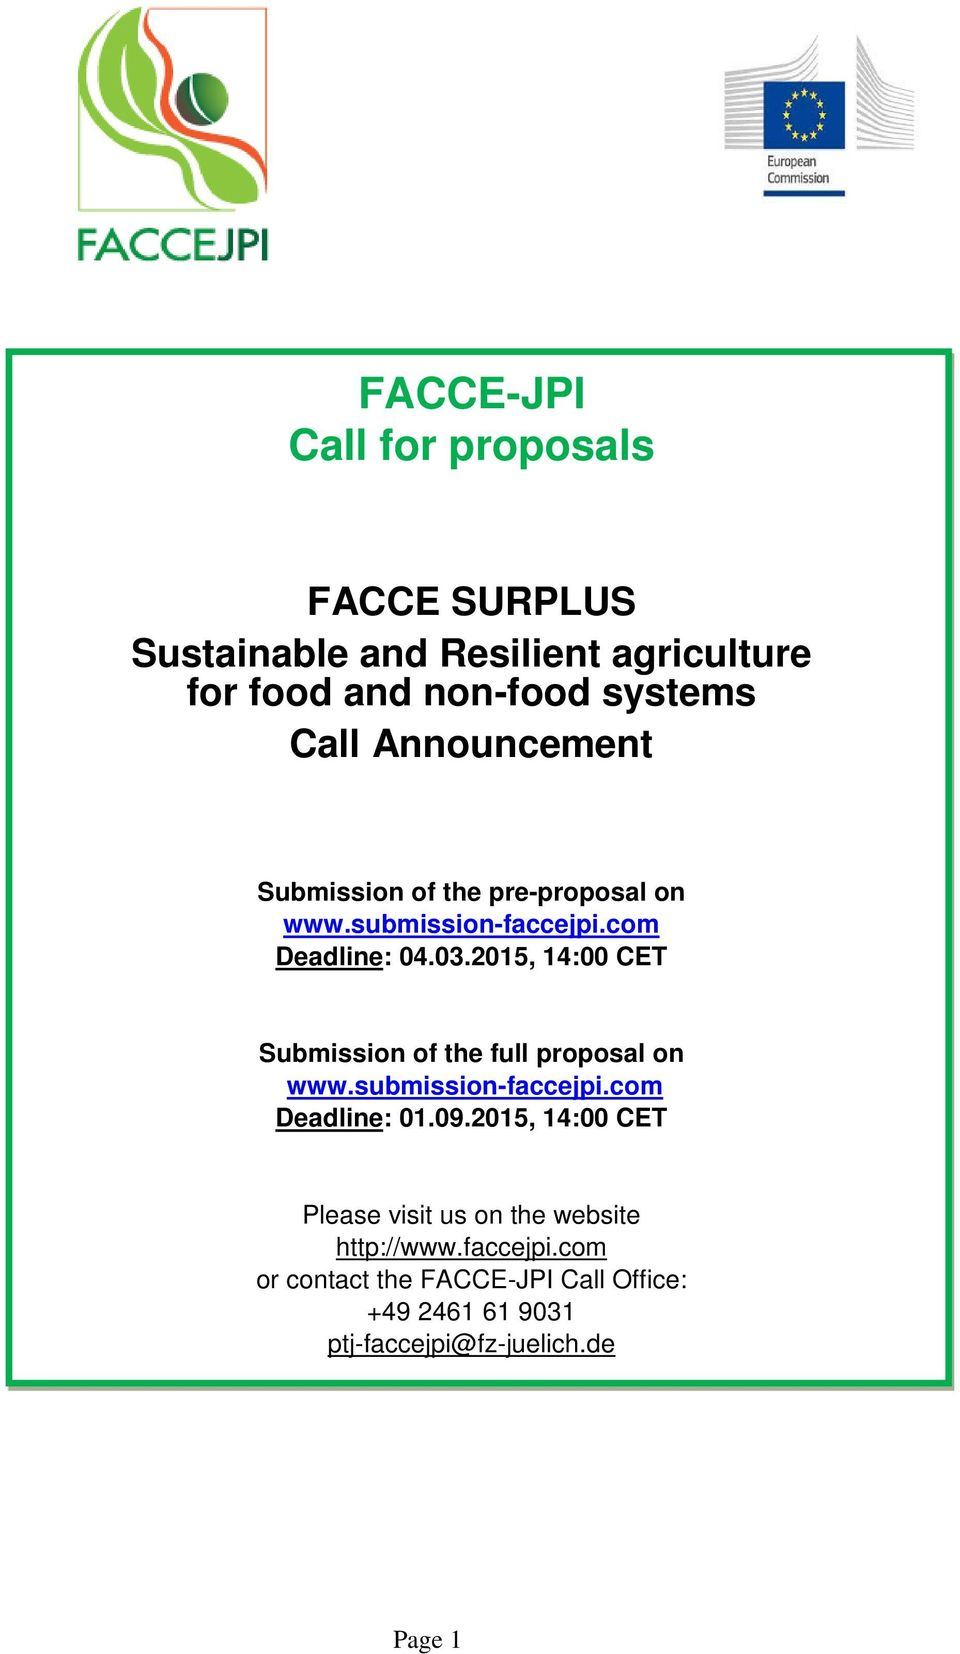 2015, 14:00 CET Submission of the full proposal on www.submission-faccejpi.com Deadline: 01.09.